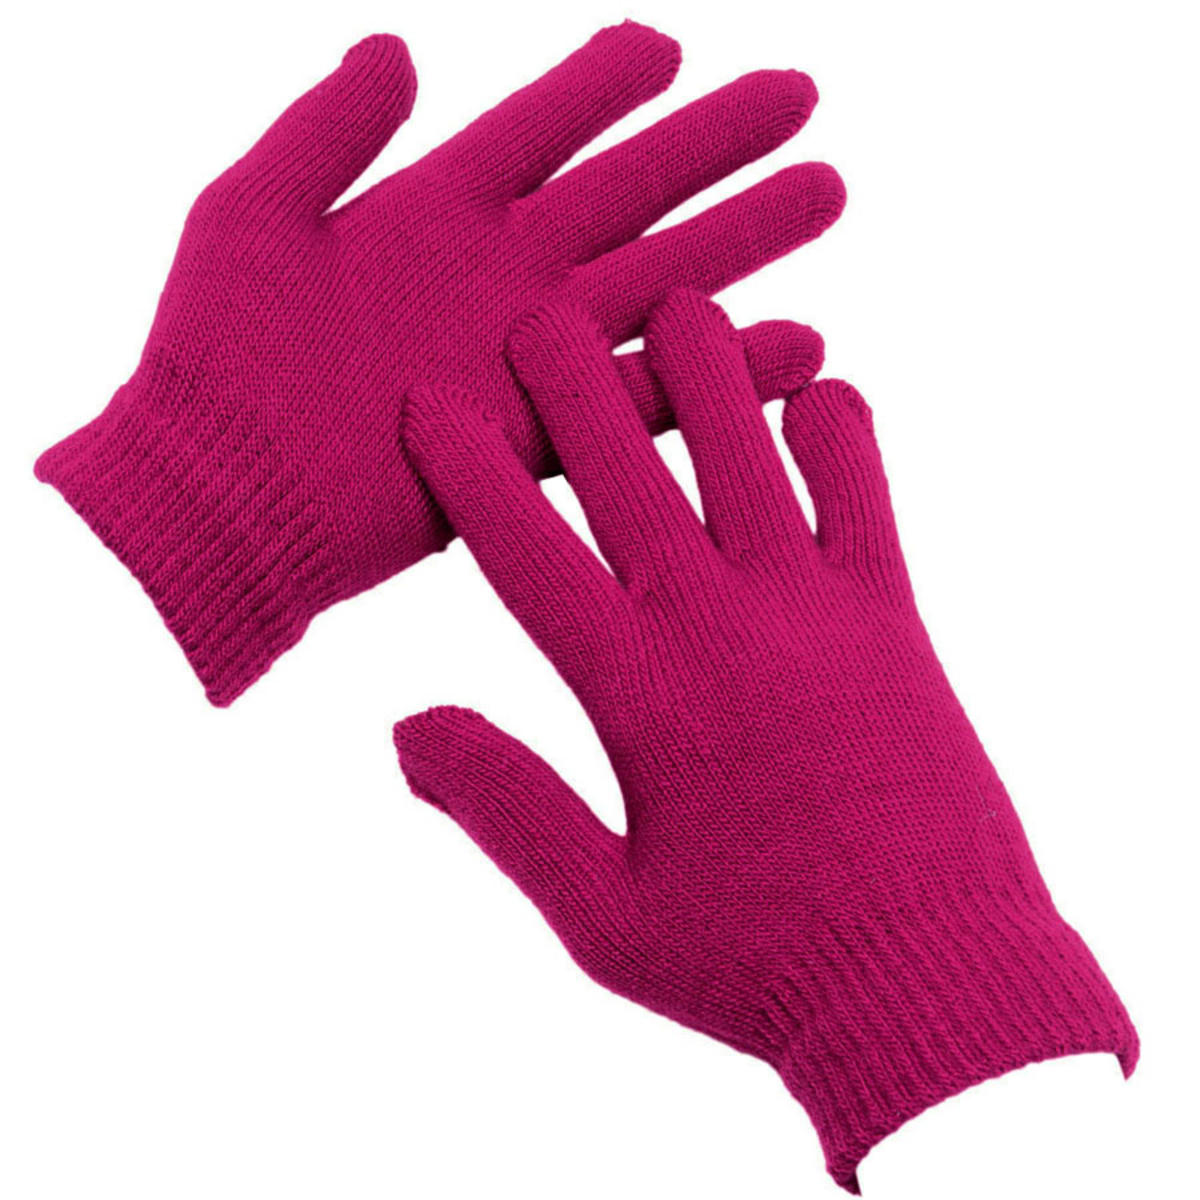 Kids boys girls back to school winter warm full magic gloves cold